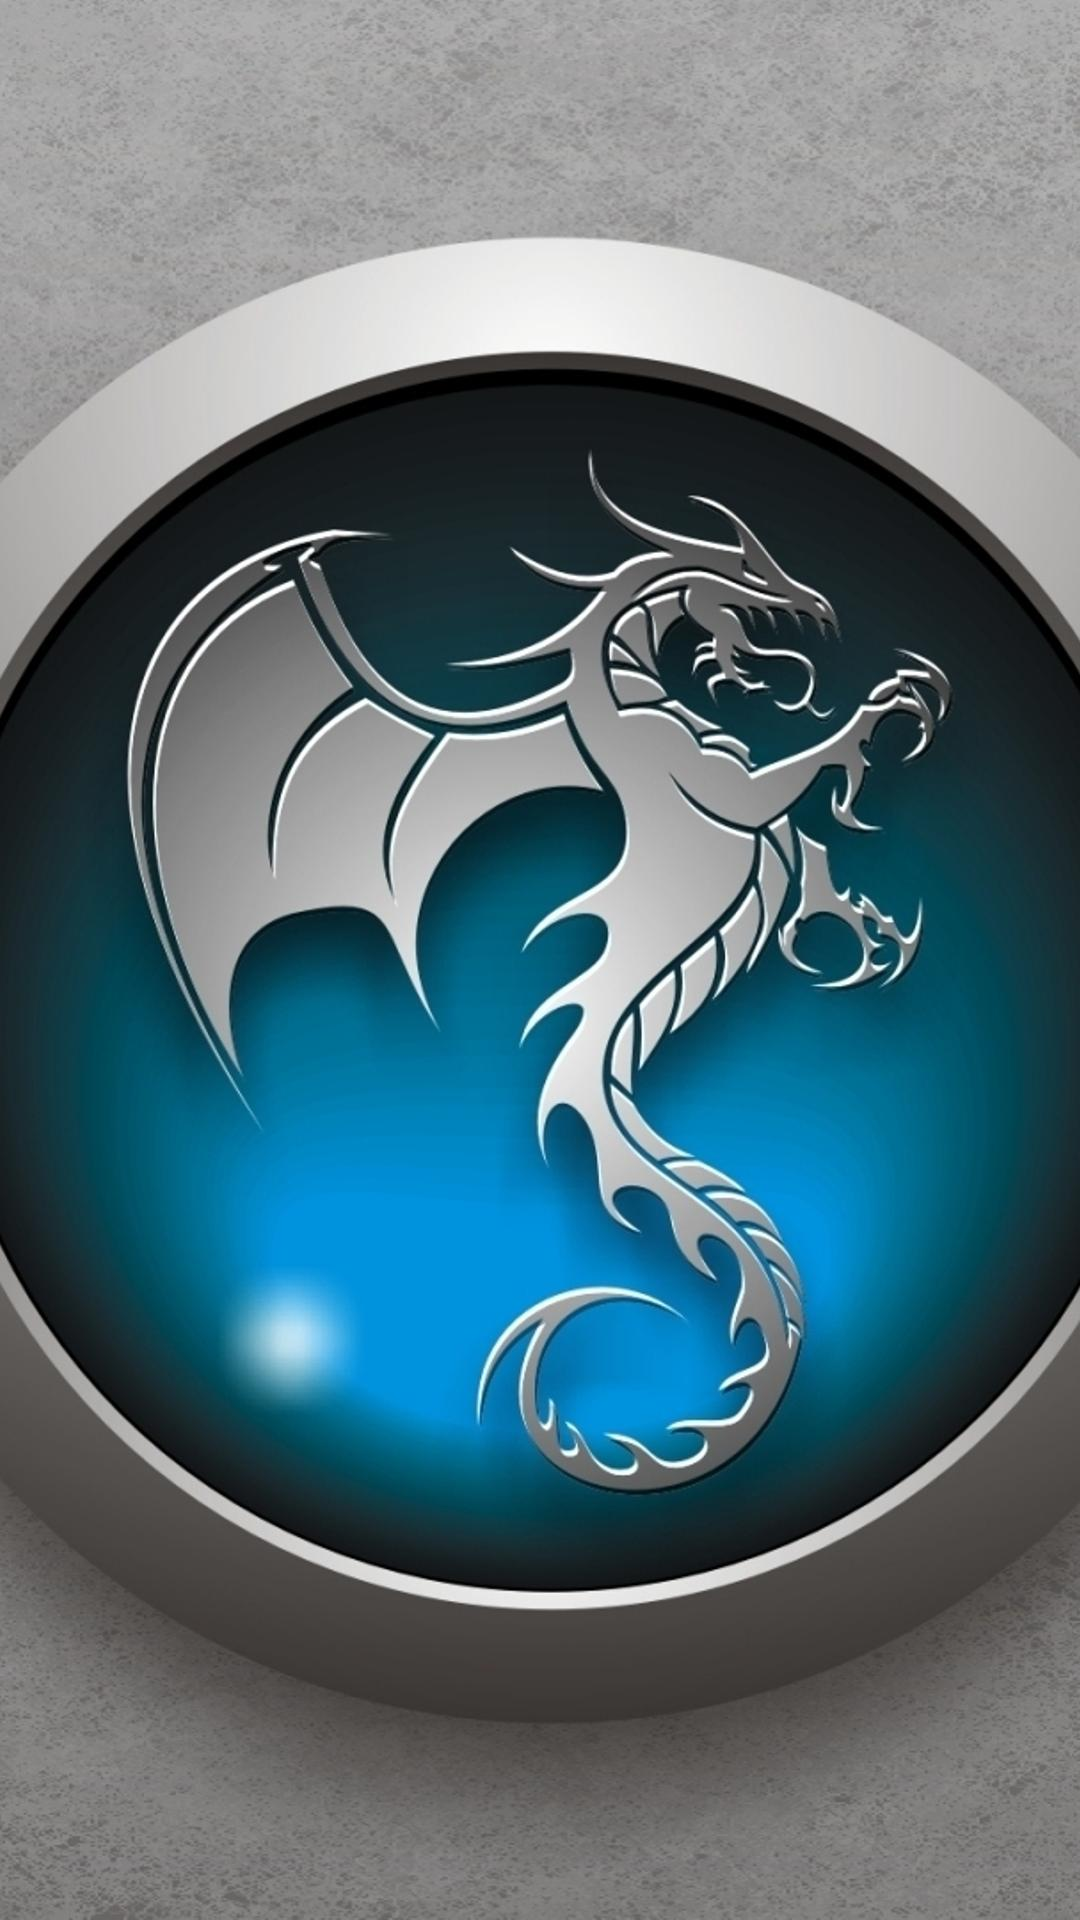 3D Blue Dragon Logo On The Gray Wall Wallpaper Download 1080x1920